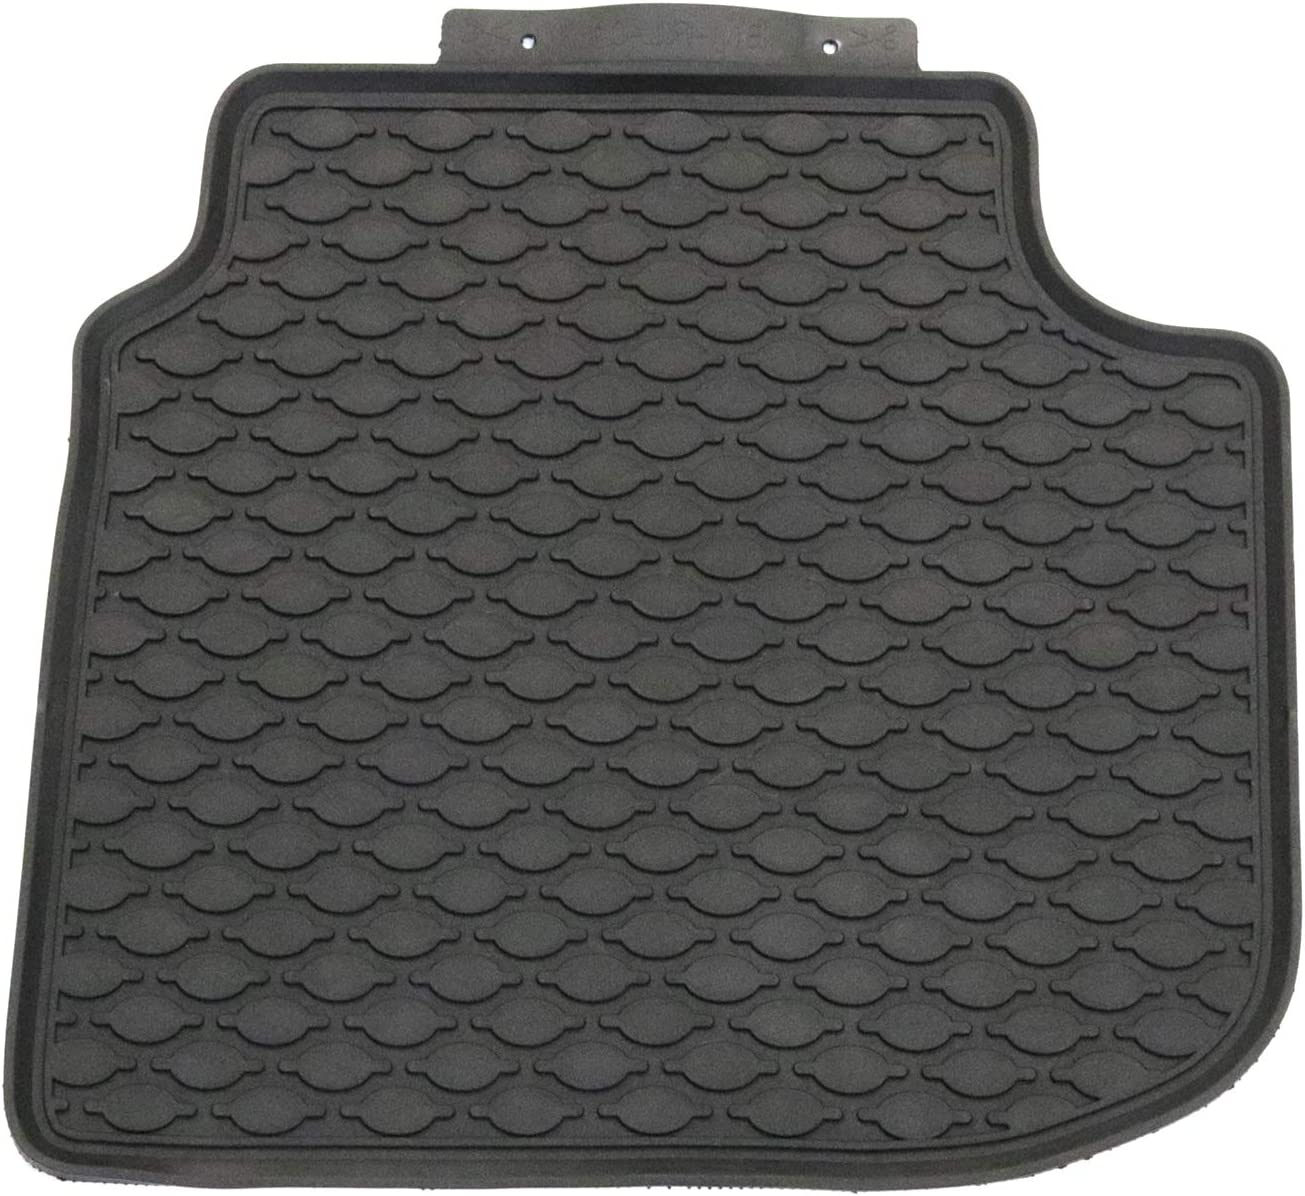 F80 M3 TMB Motorsports All Weather Floor Mats for BMW 3 Series 2012-2018 /& 2015